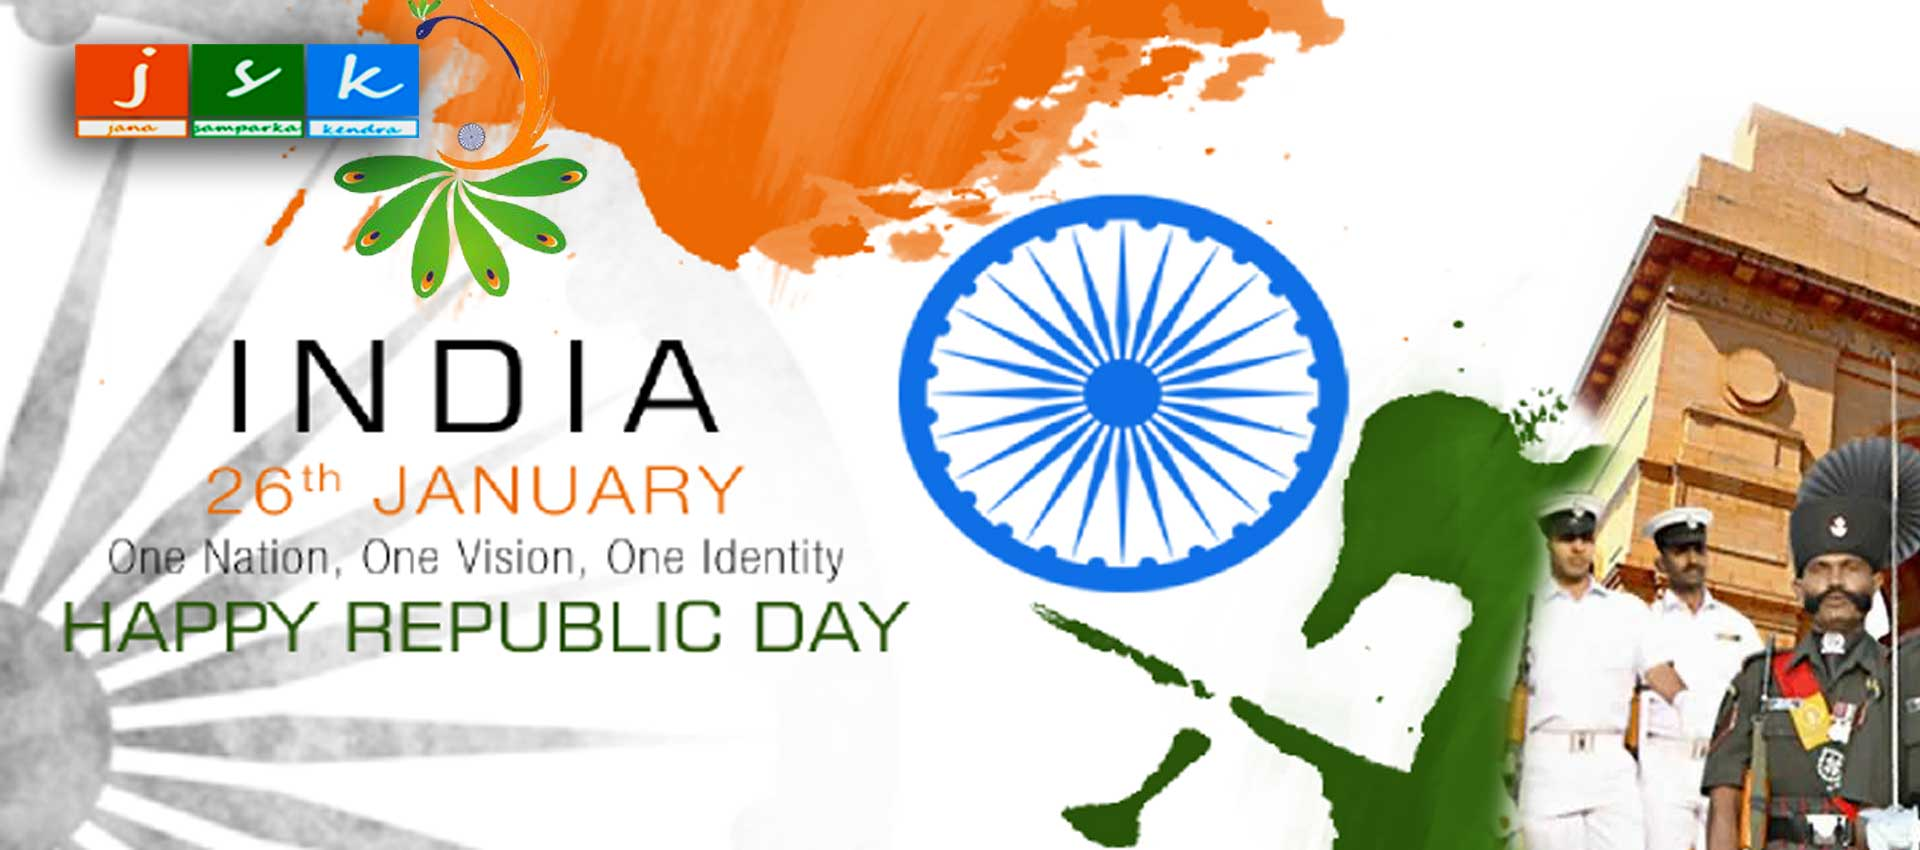 26 January, Republic Day of India